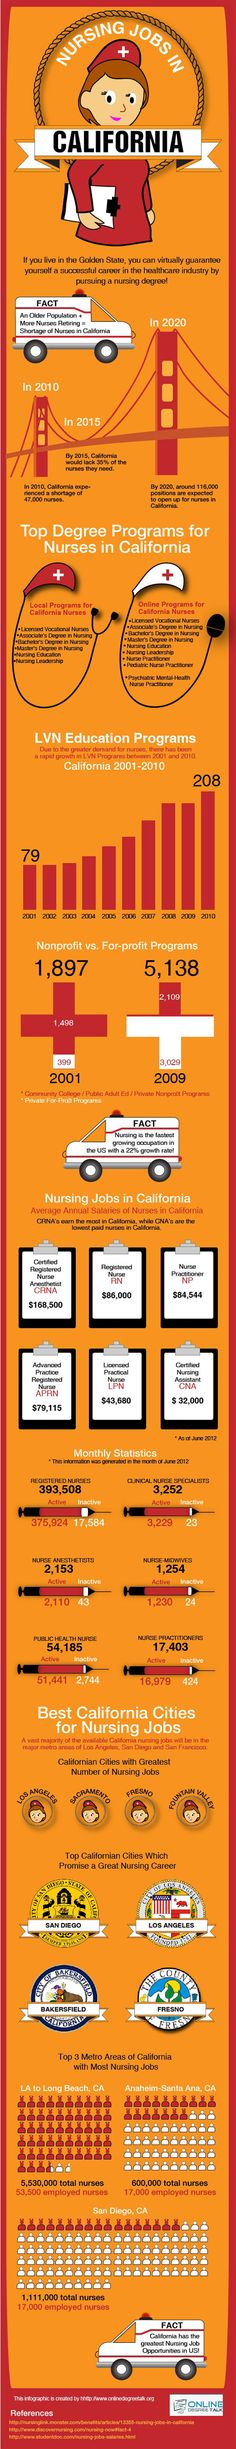 The Golden State not only promises nurses the highest salaries but the most job opportunities as well.